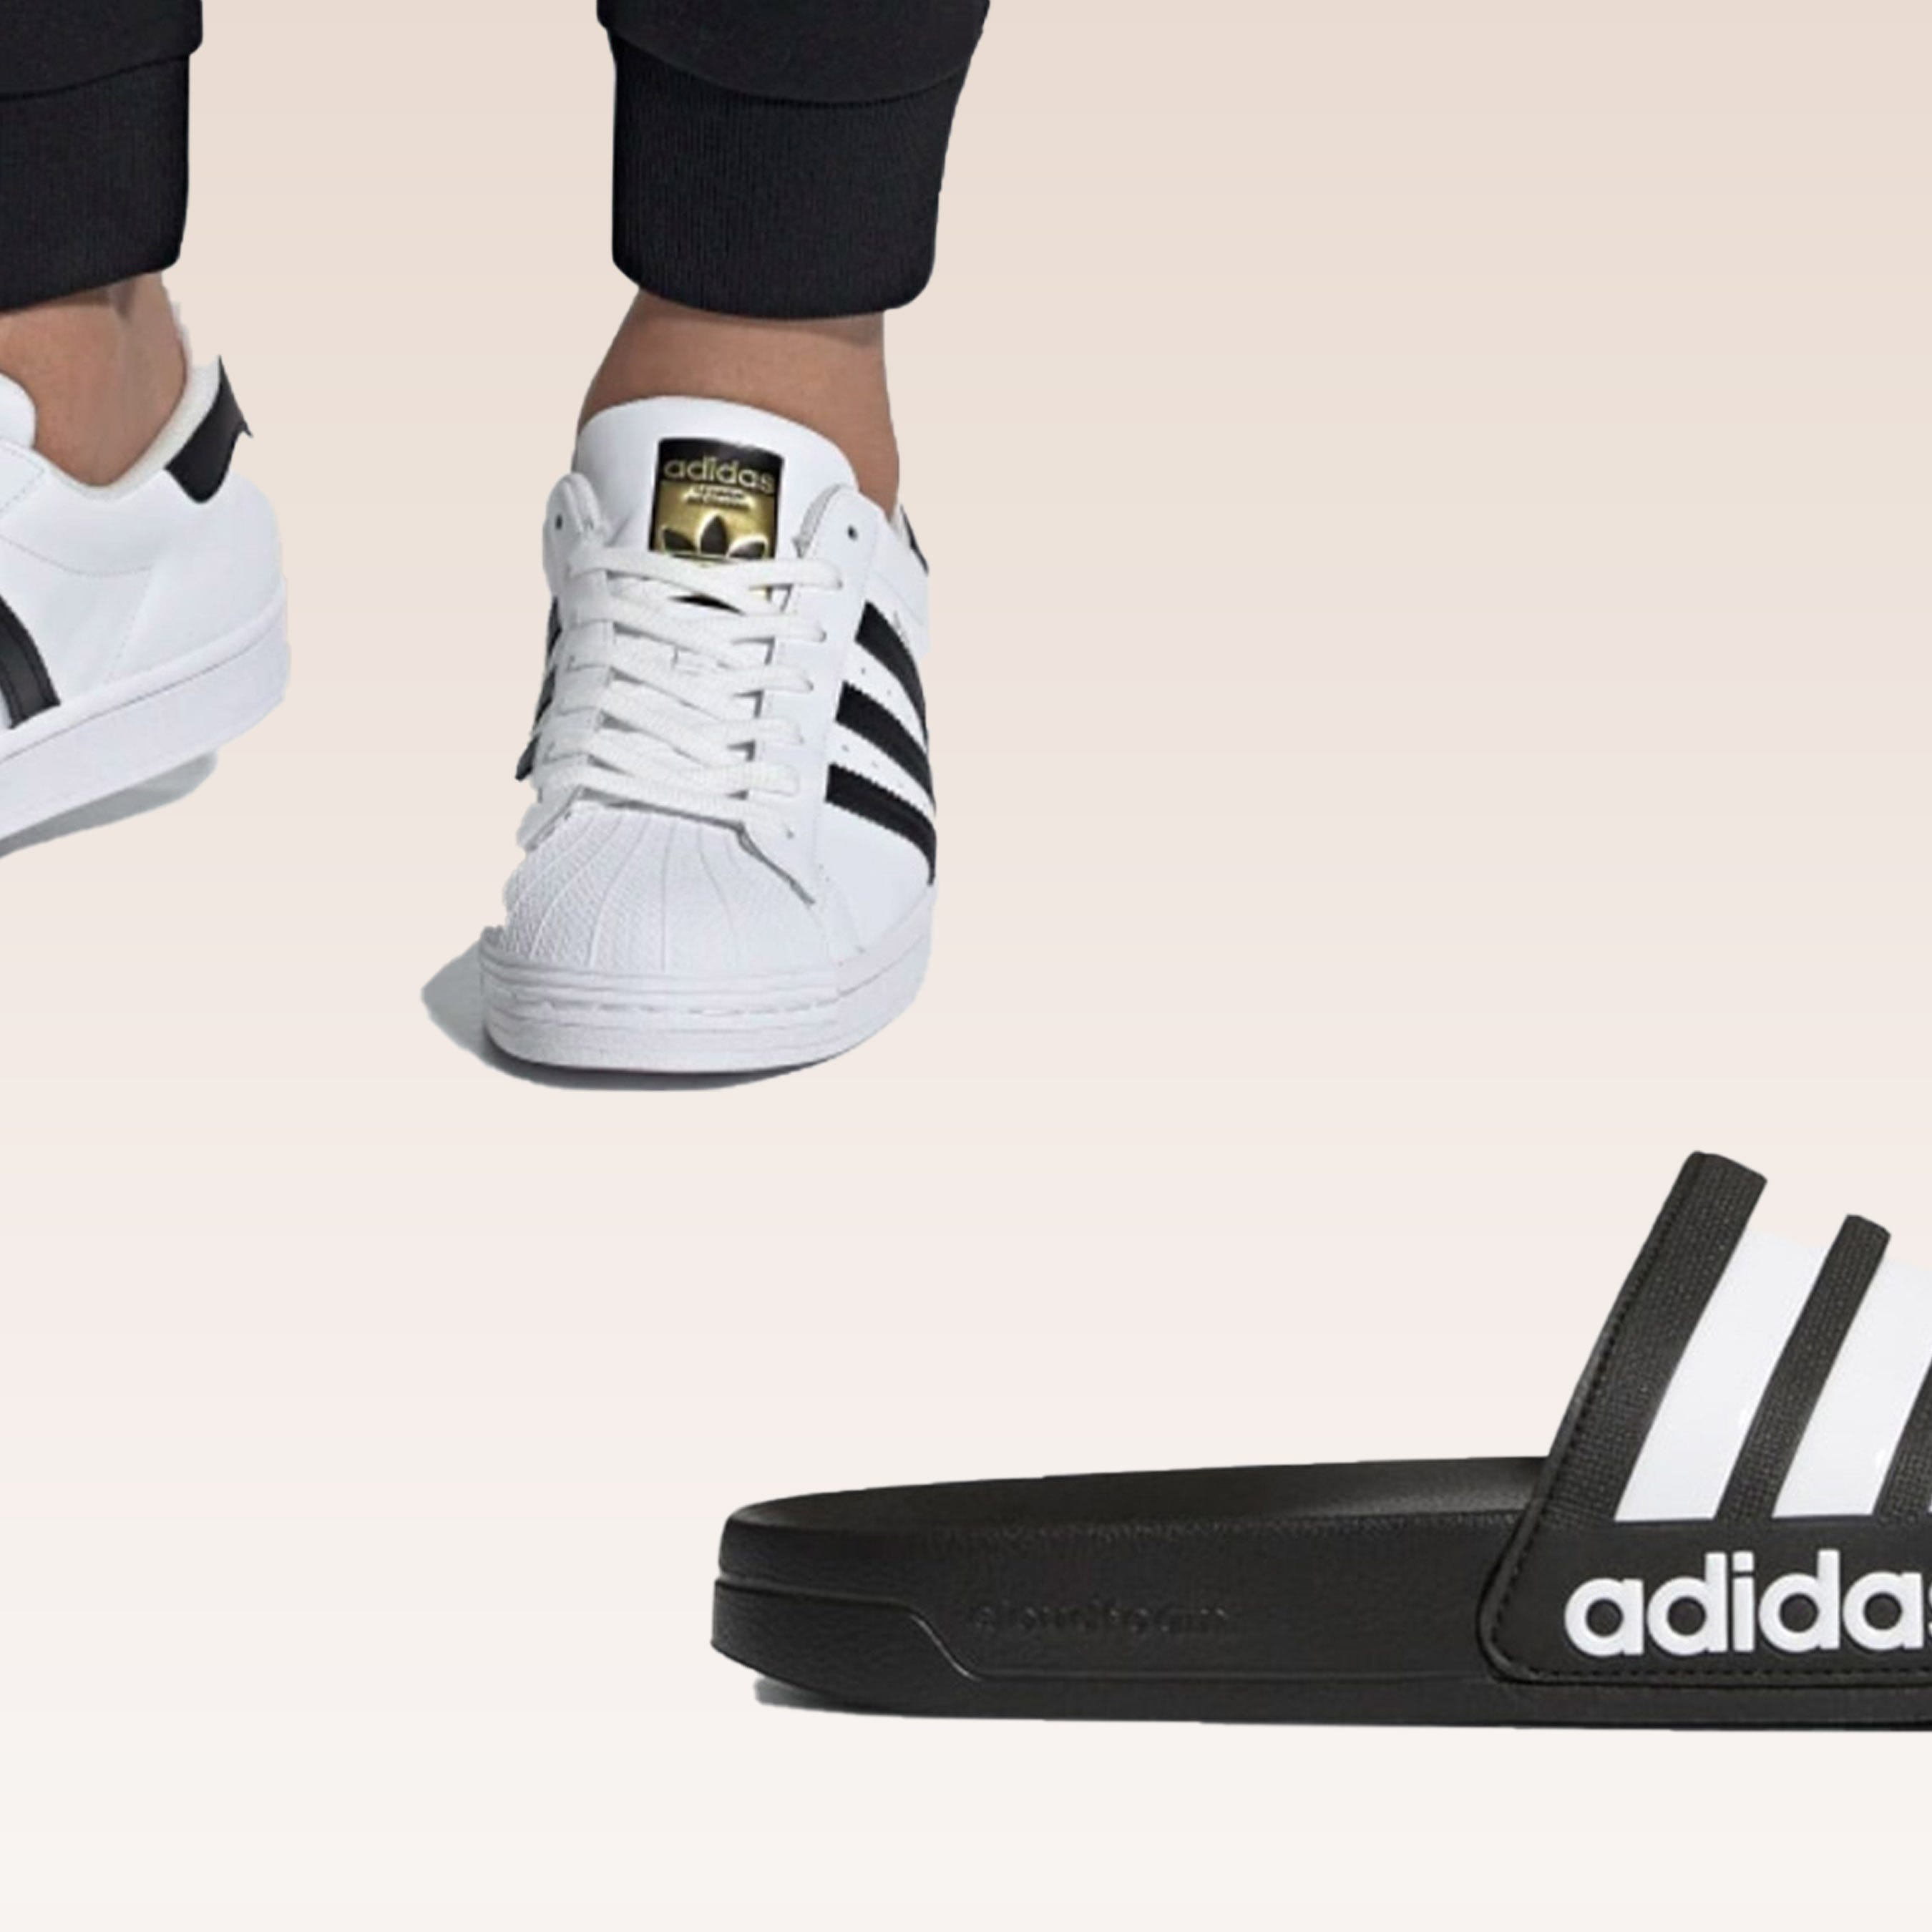 Black Friday 2020 Shop Early Access Black Friday Deals At Adidas